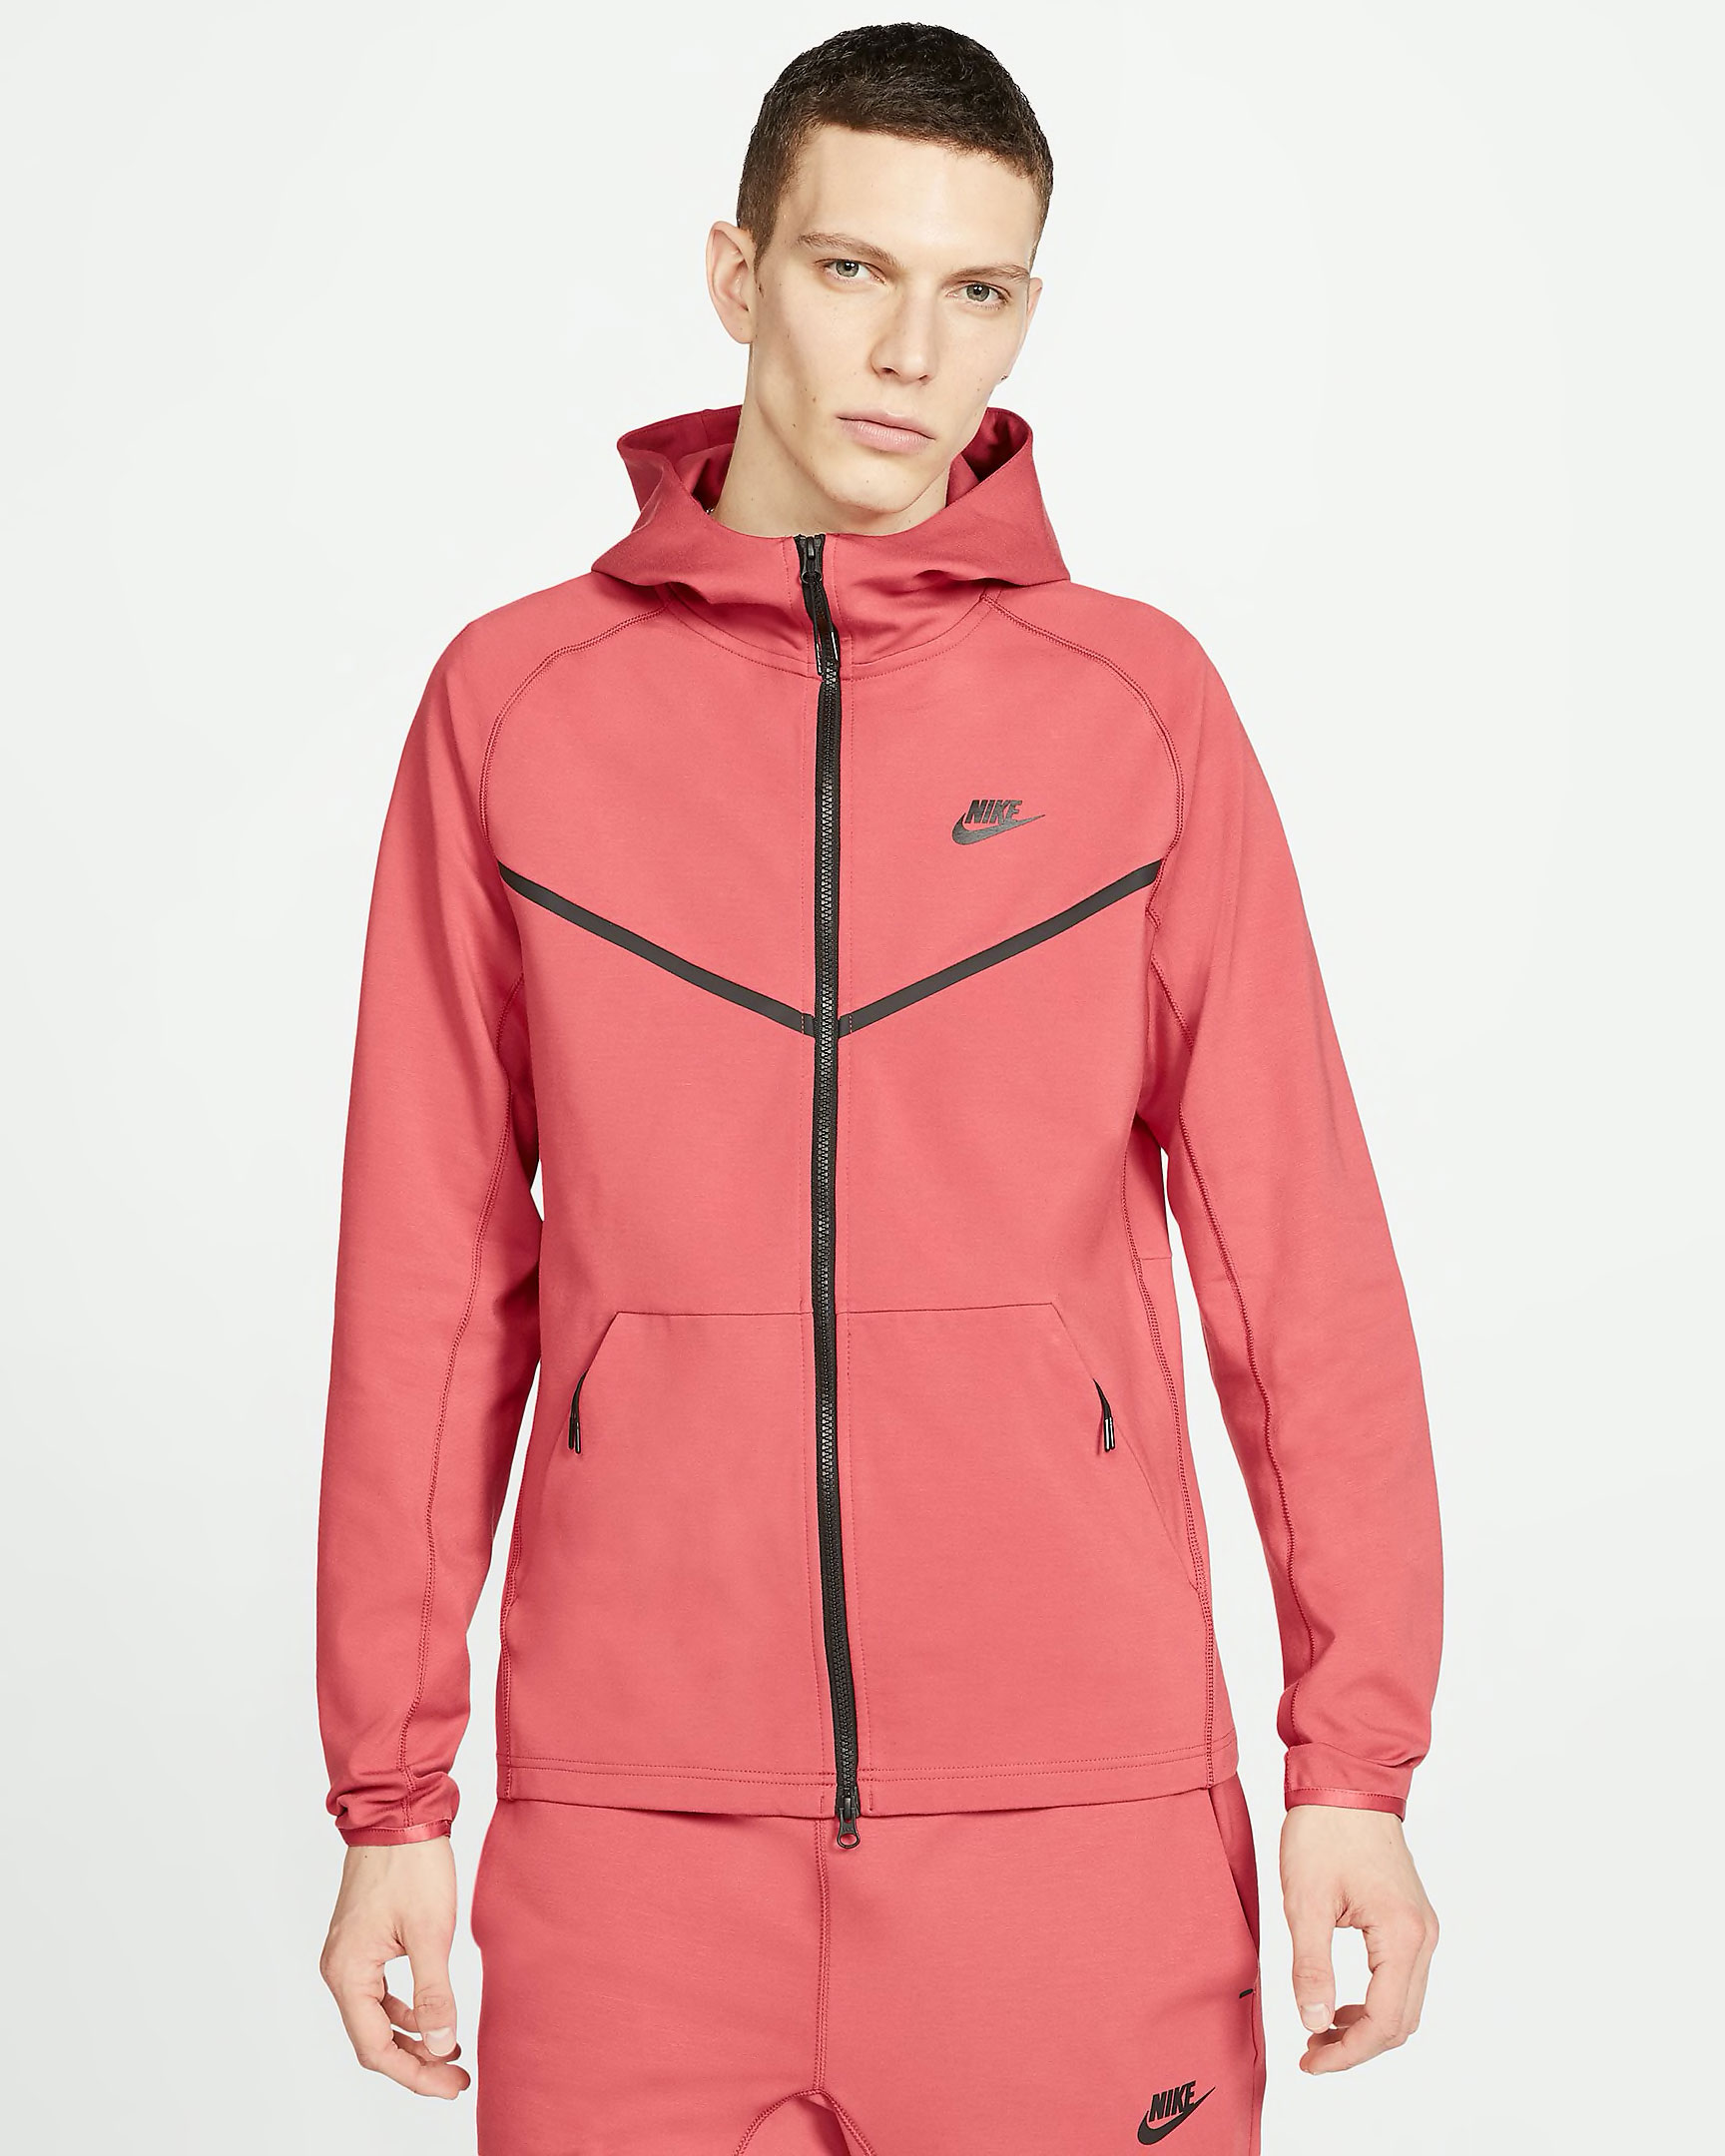 nike-infrared-tech-fleece-zip-hoodie